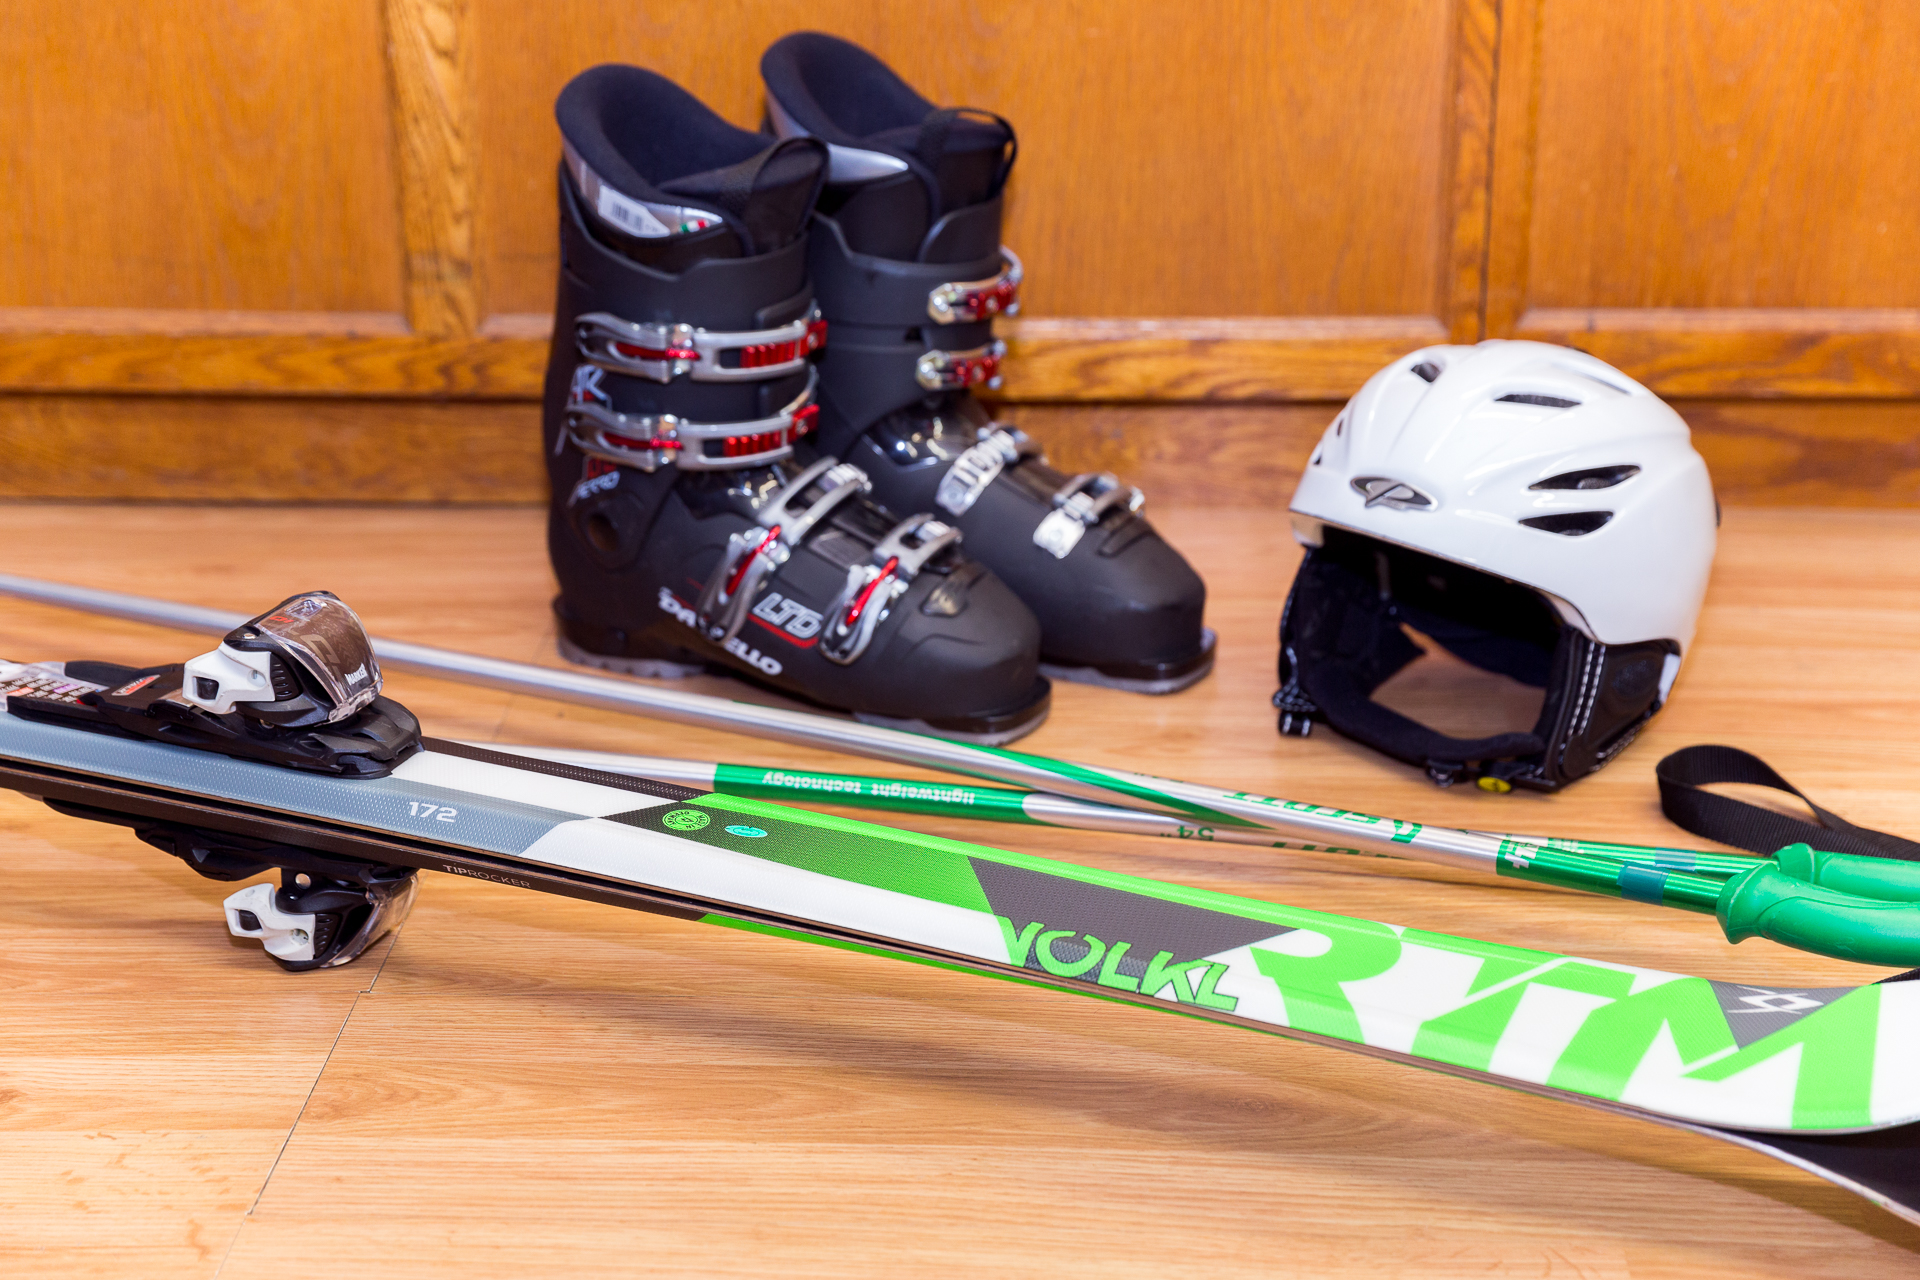 DEMO SKI SEASON LEASE PACKAGE  // Volkl RTM // Boots & Poles Included   RATES : SEASON - $349.99 Demo Package picked up prior to January 1, 2019 SEASON - $299.99 Demo Package picked up after January 1, 2019 // Helmets are an additional $29.99 for the season.